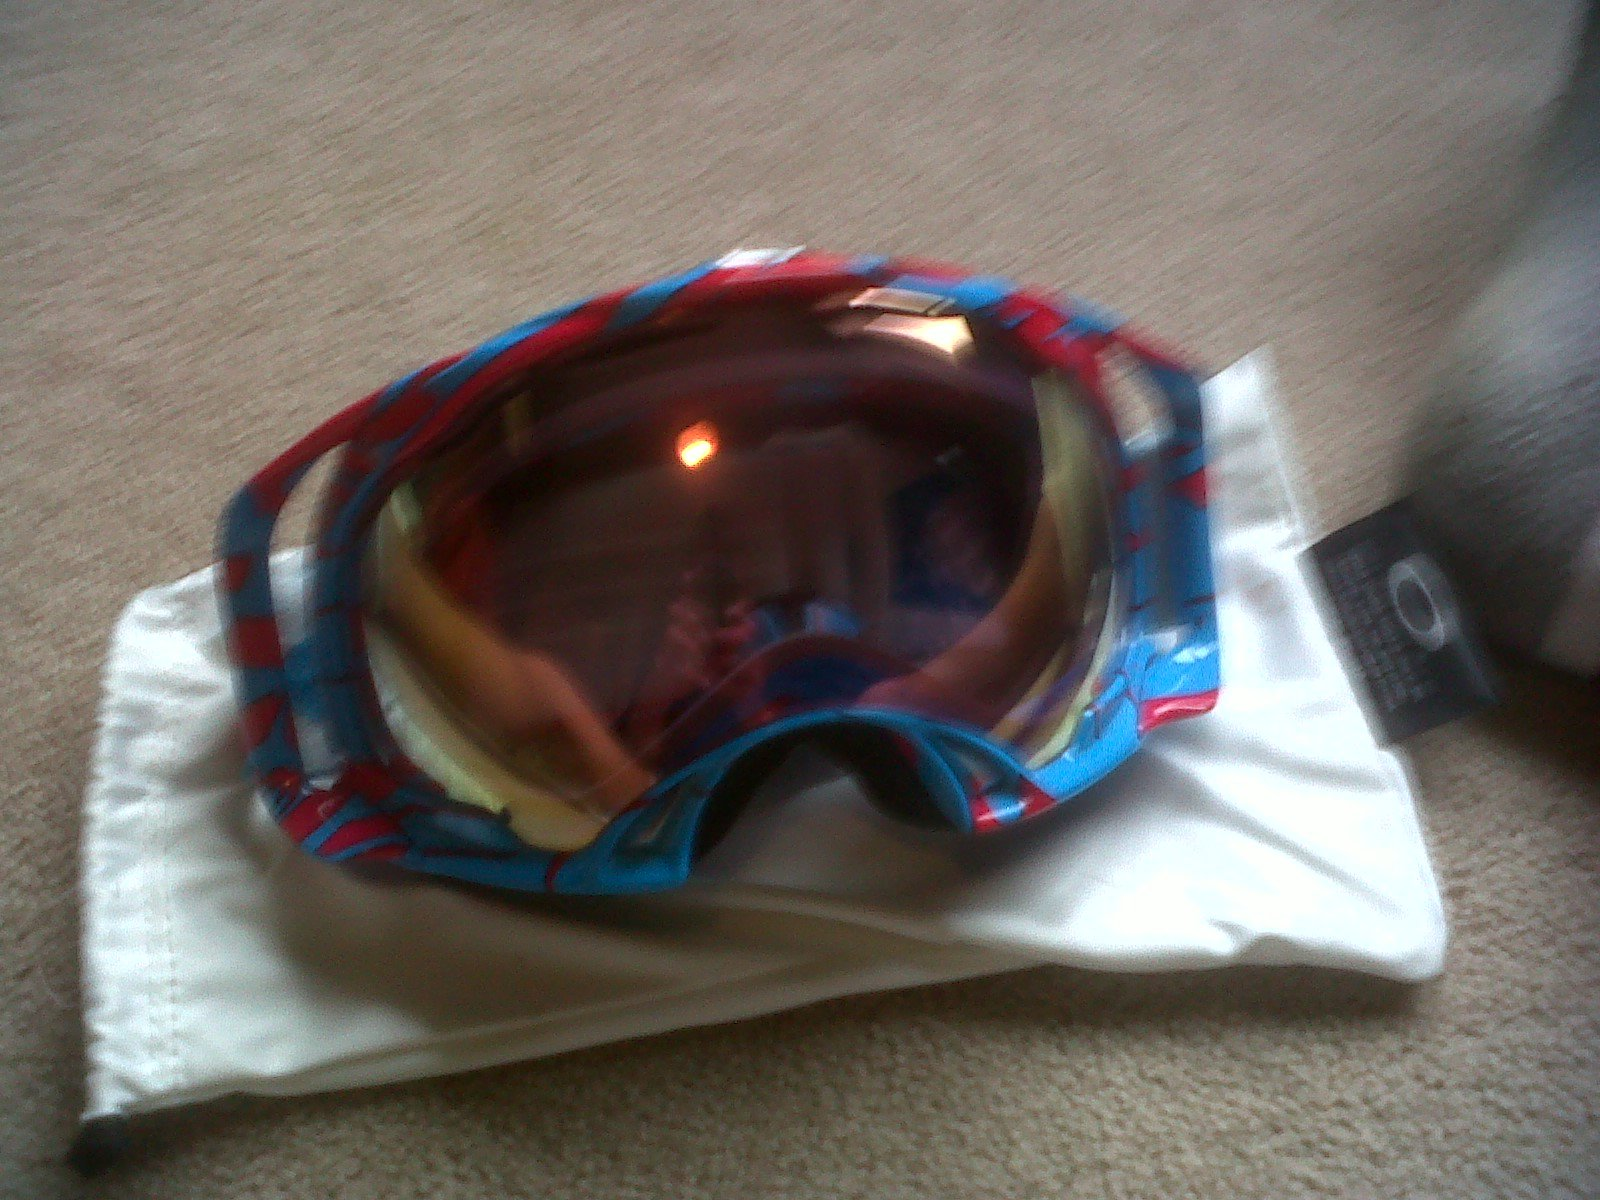 Oakley splices for sale, check thread